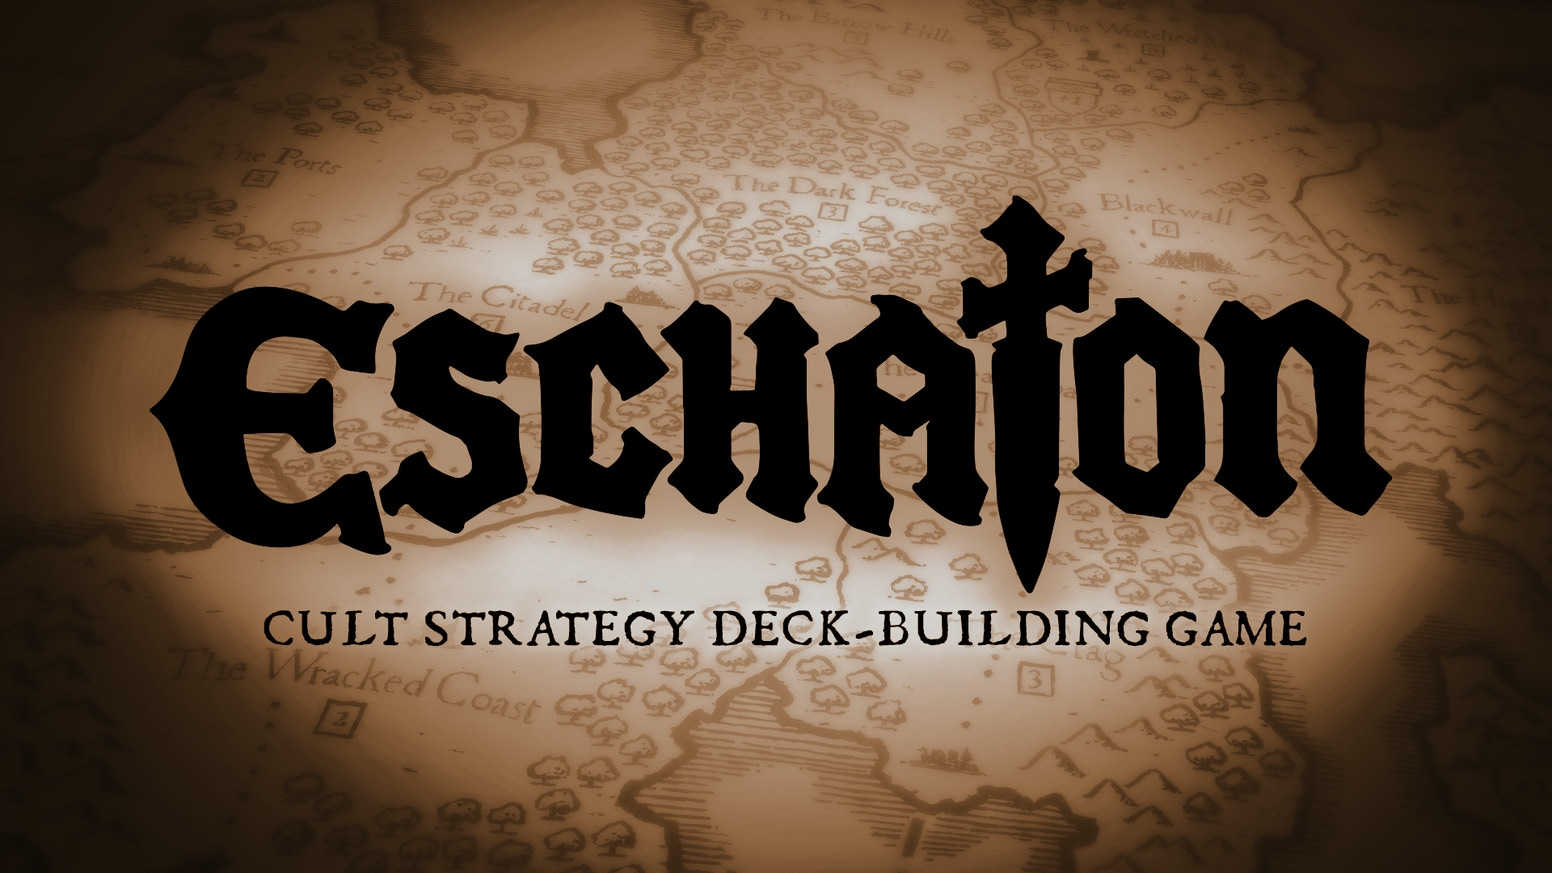 Gather the cults, delve into the arcane, and conquer in the name of the Dark One. A hand-assembled tabletop game for 2-6 players.